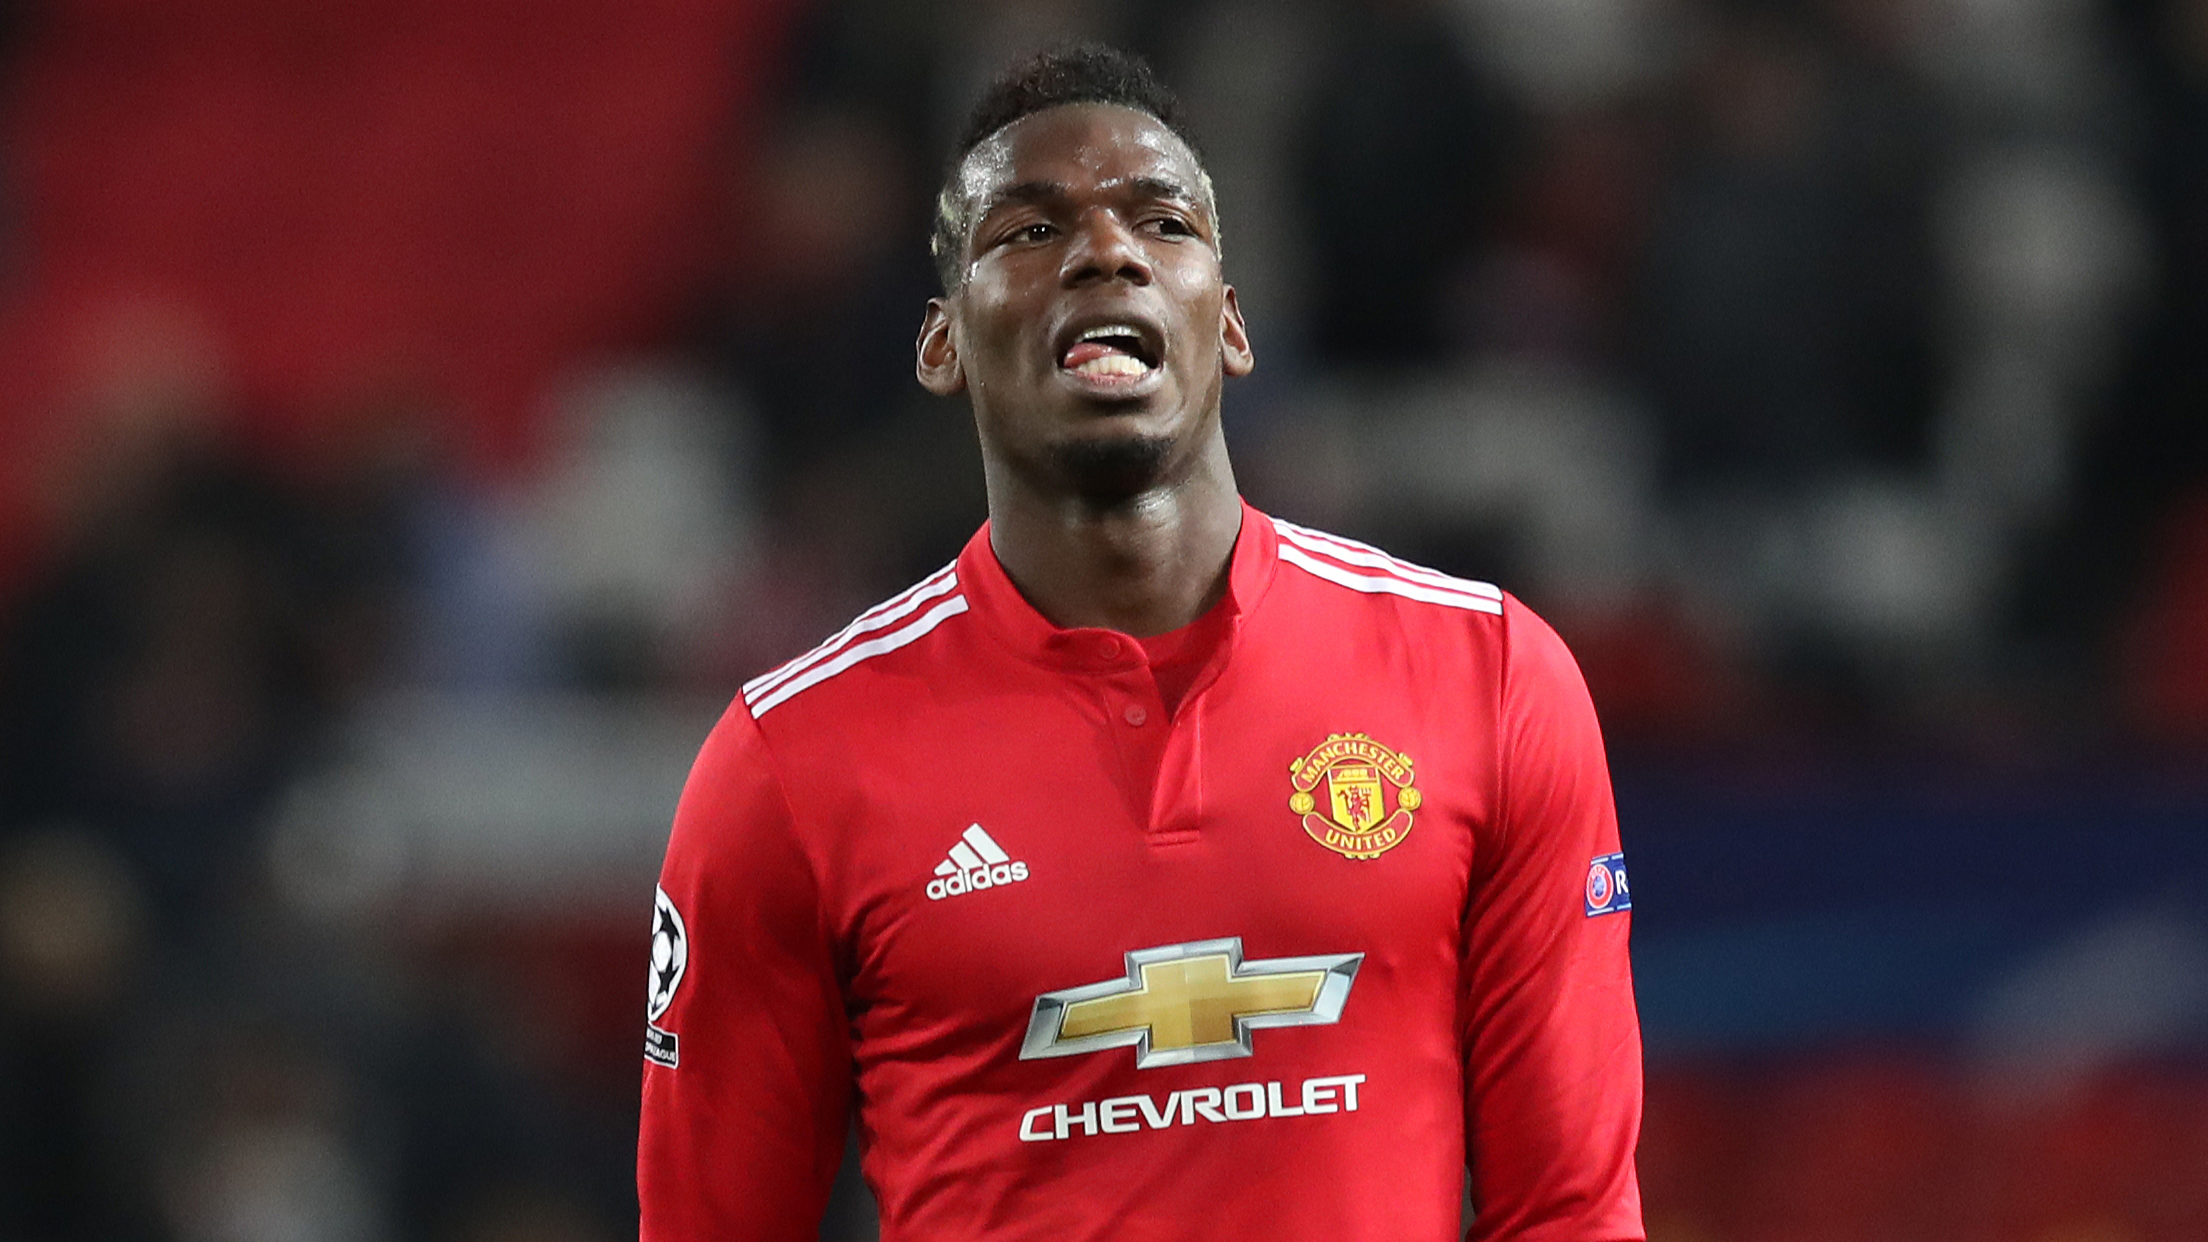 Manchester United Fans Furious With Paul Pogba Latest Social Media Activity